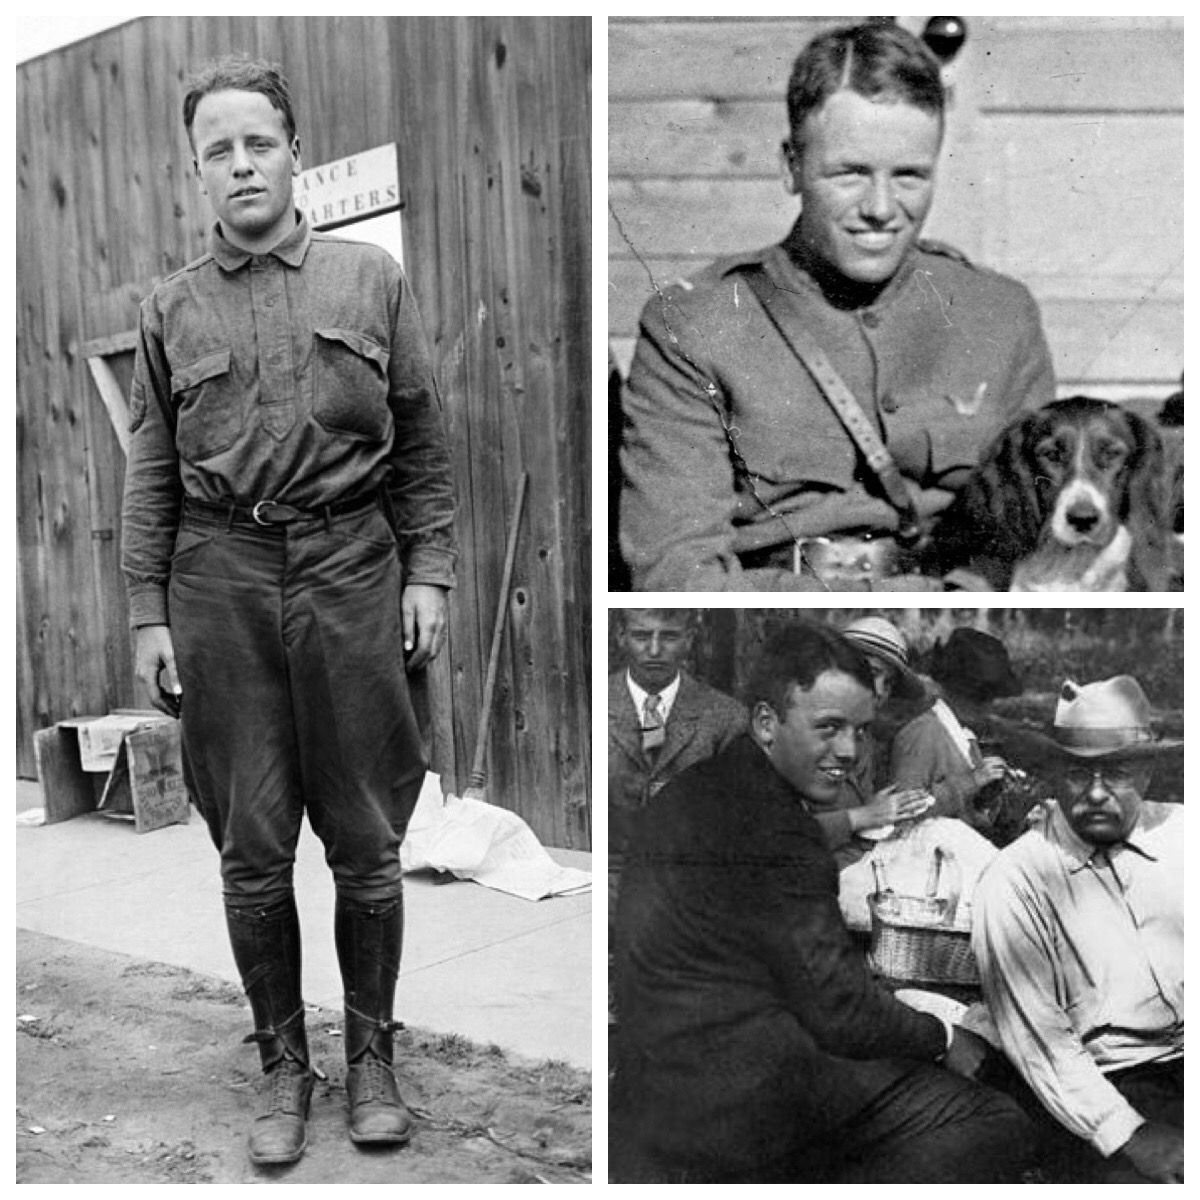 Lt. Quentin Roosevelt, youngest son of Theodore Roosevelt, joined the U. S. Army Air Service in WW1 And was ki… | Famous veterans, Roosevelt family, Edith roosevelt